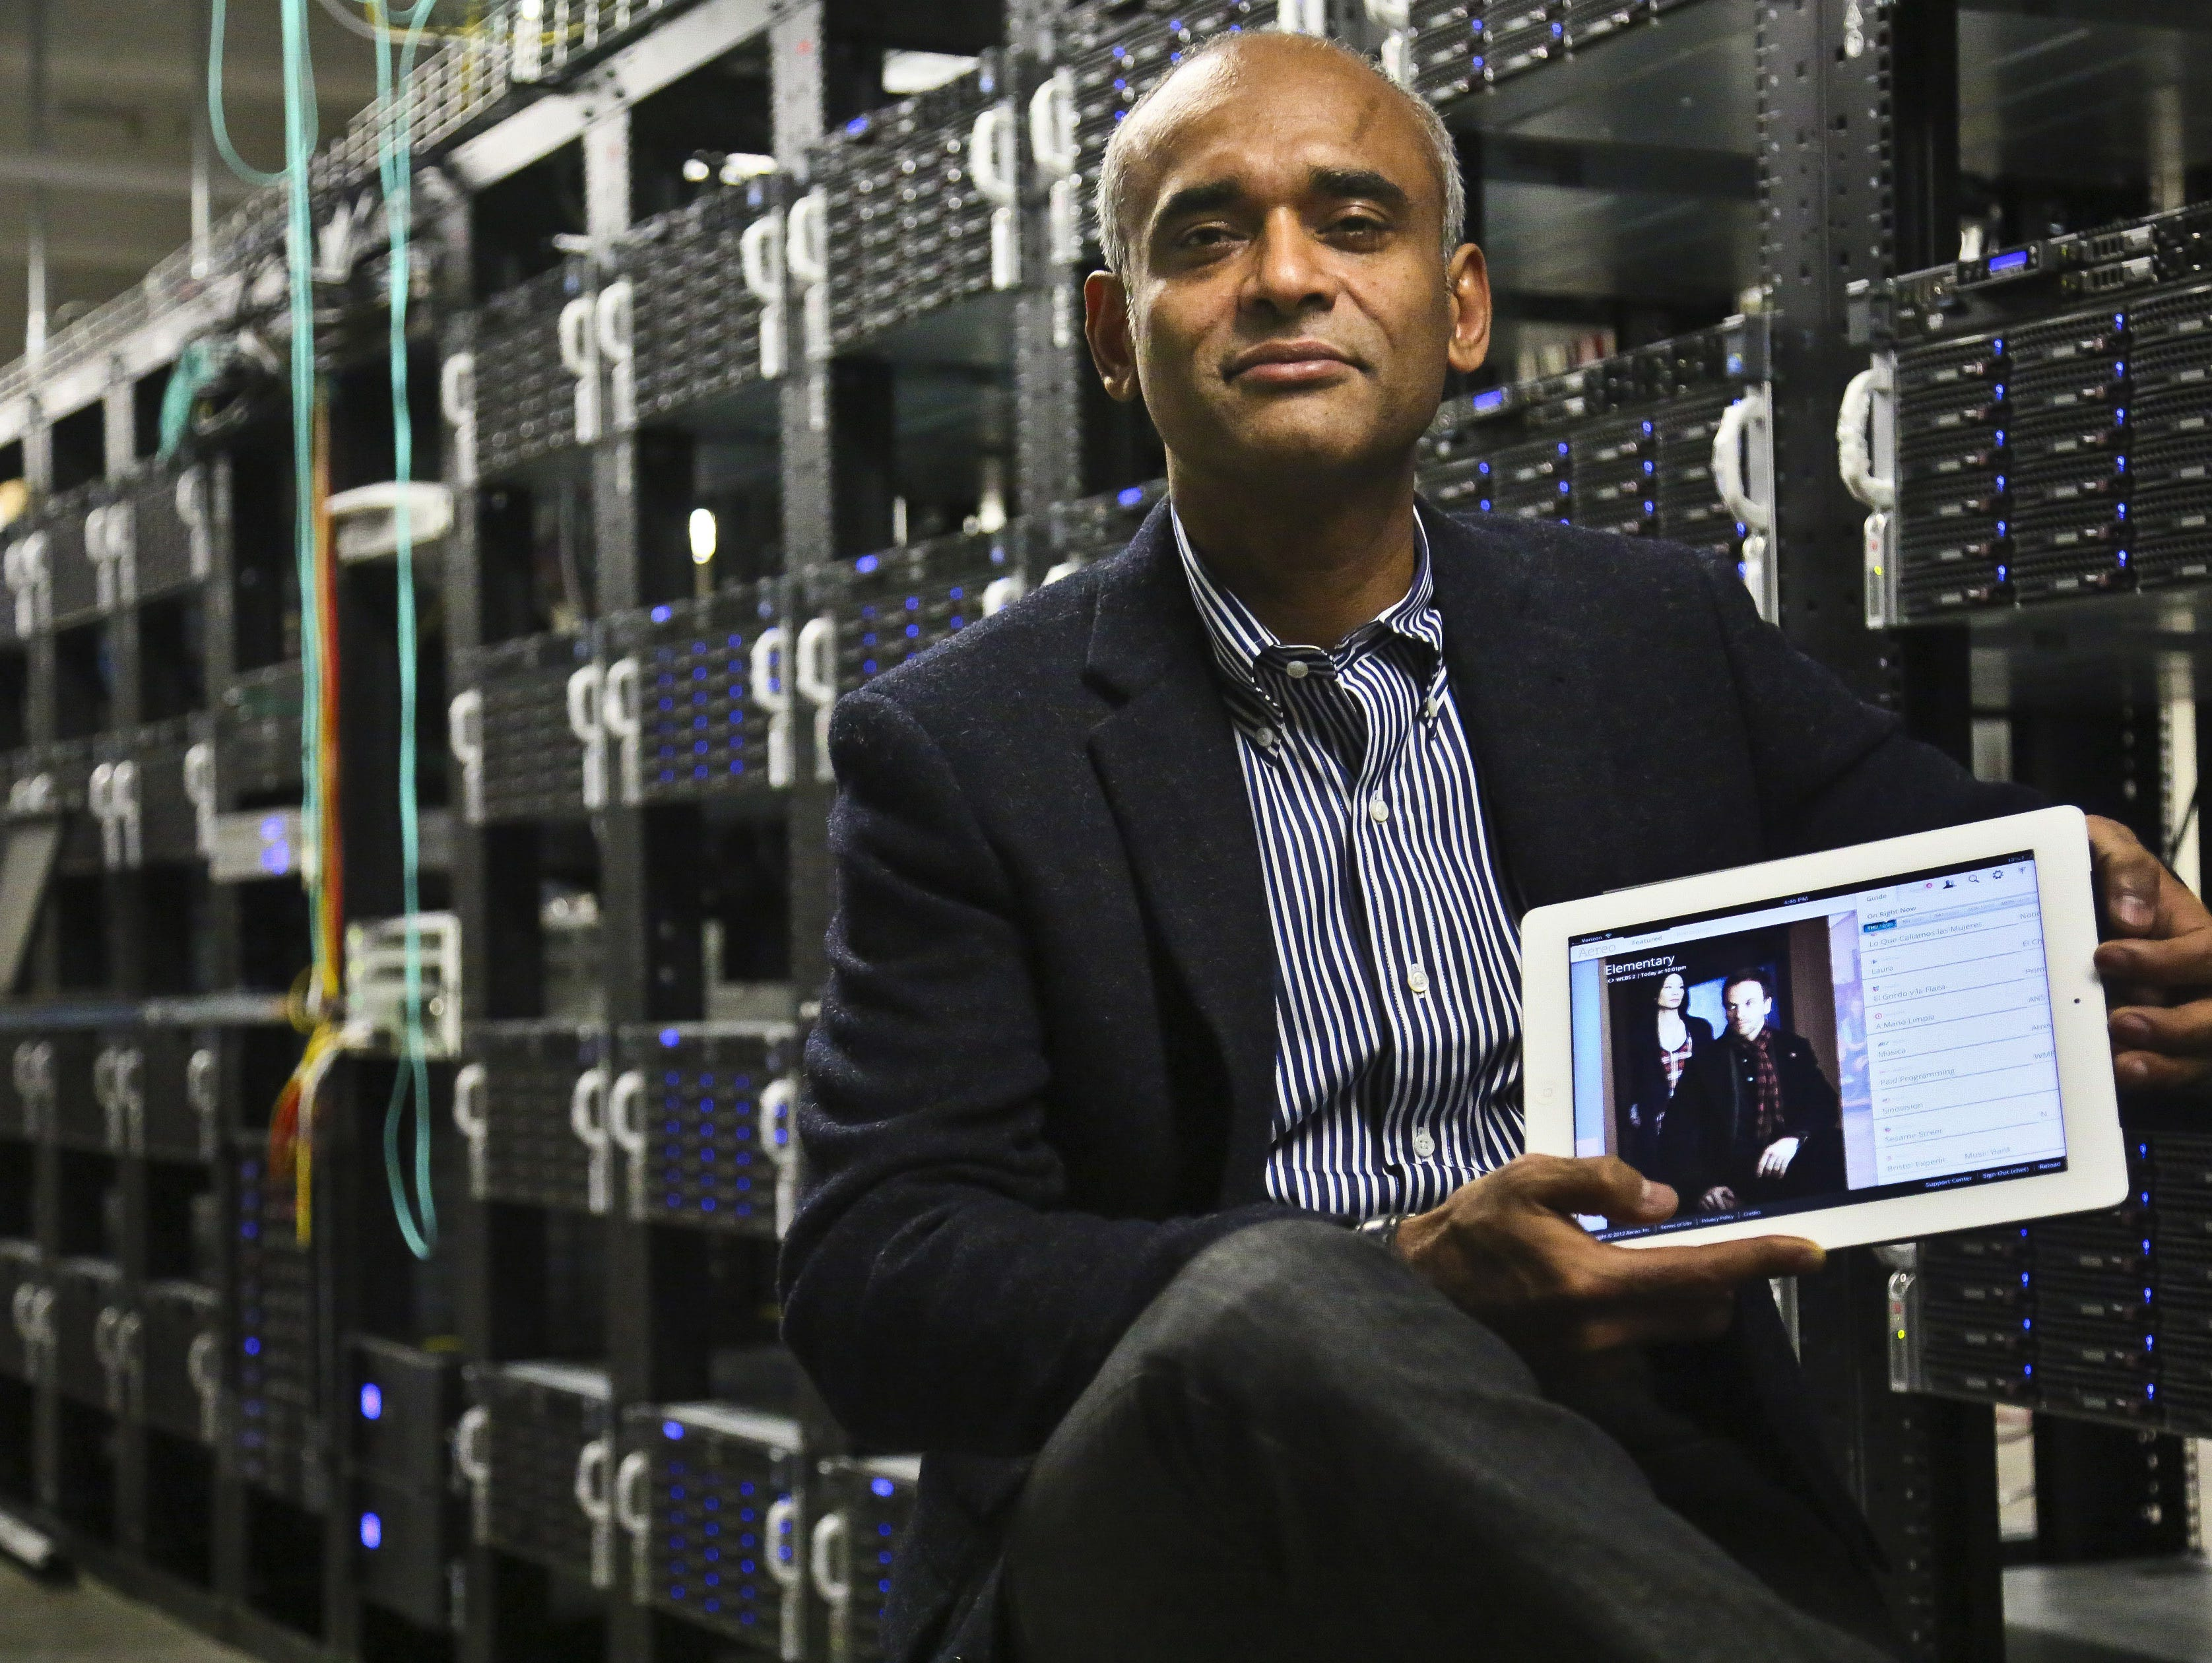 This Dec. 20, 2012 file photo shows Chet Kanojia, founder and CEO of Aereo, Inc., holding a tablet displaying his company's technology, in New York.  The Supreme Court has ruled that a startup Internet company has to pay broadcasters when it takes te